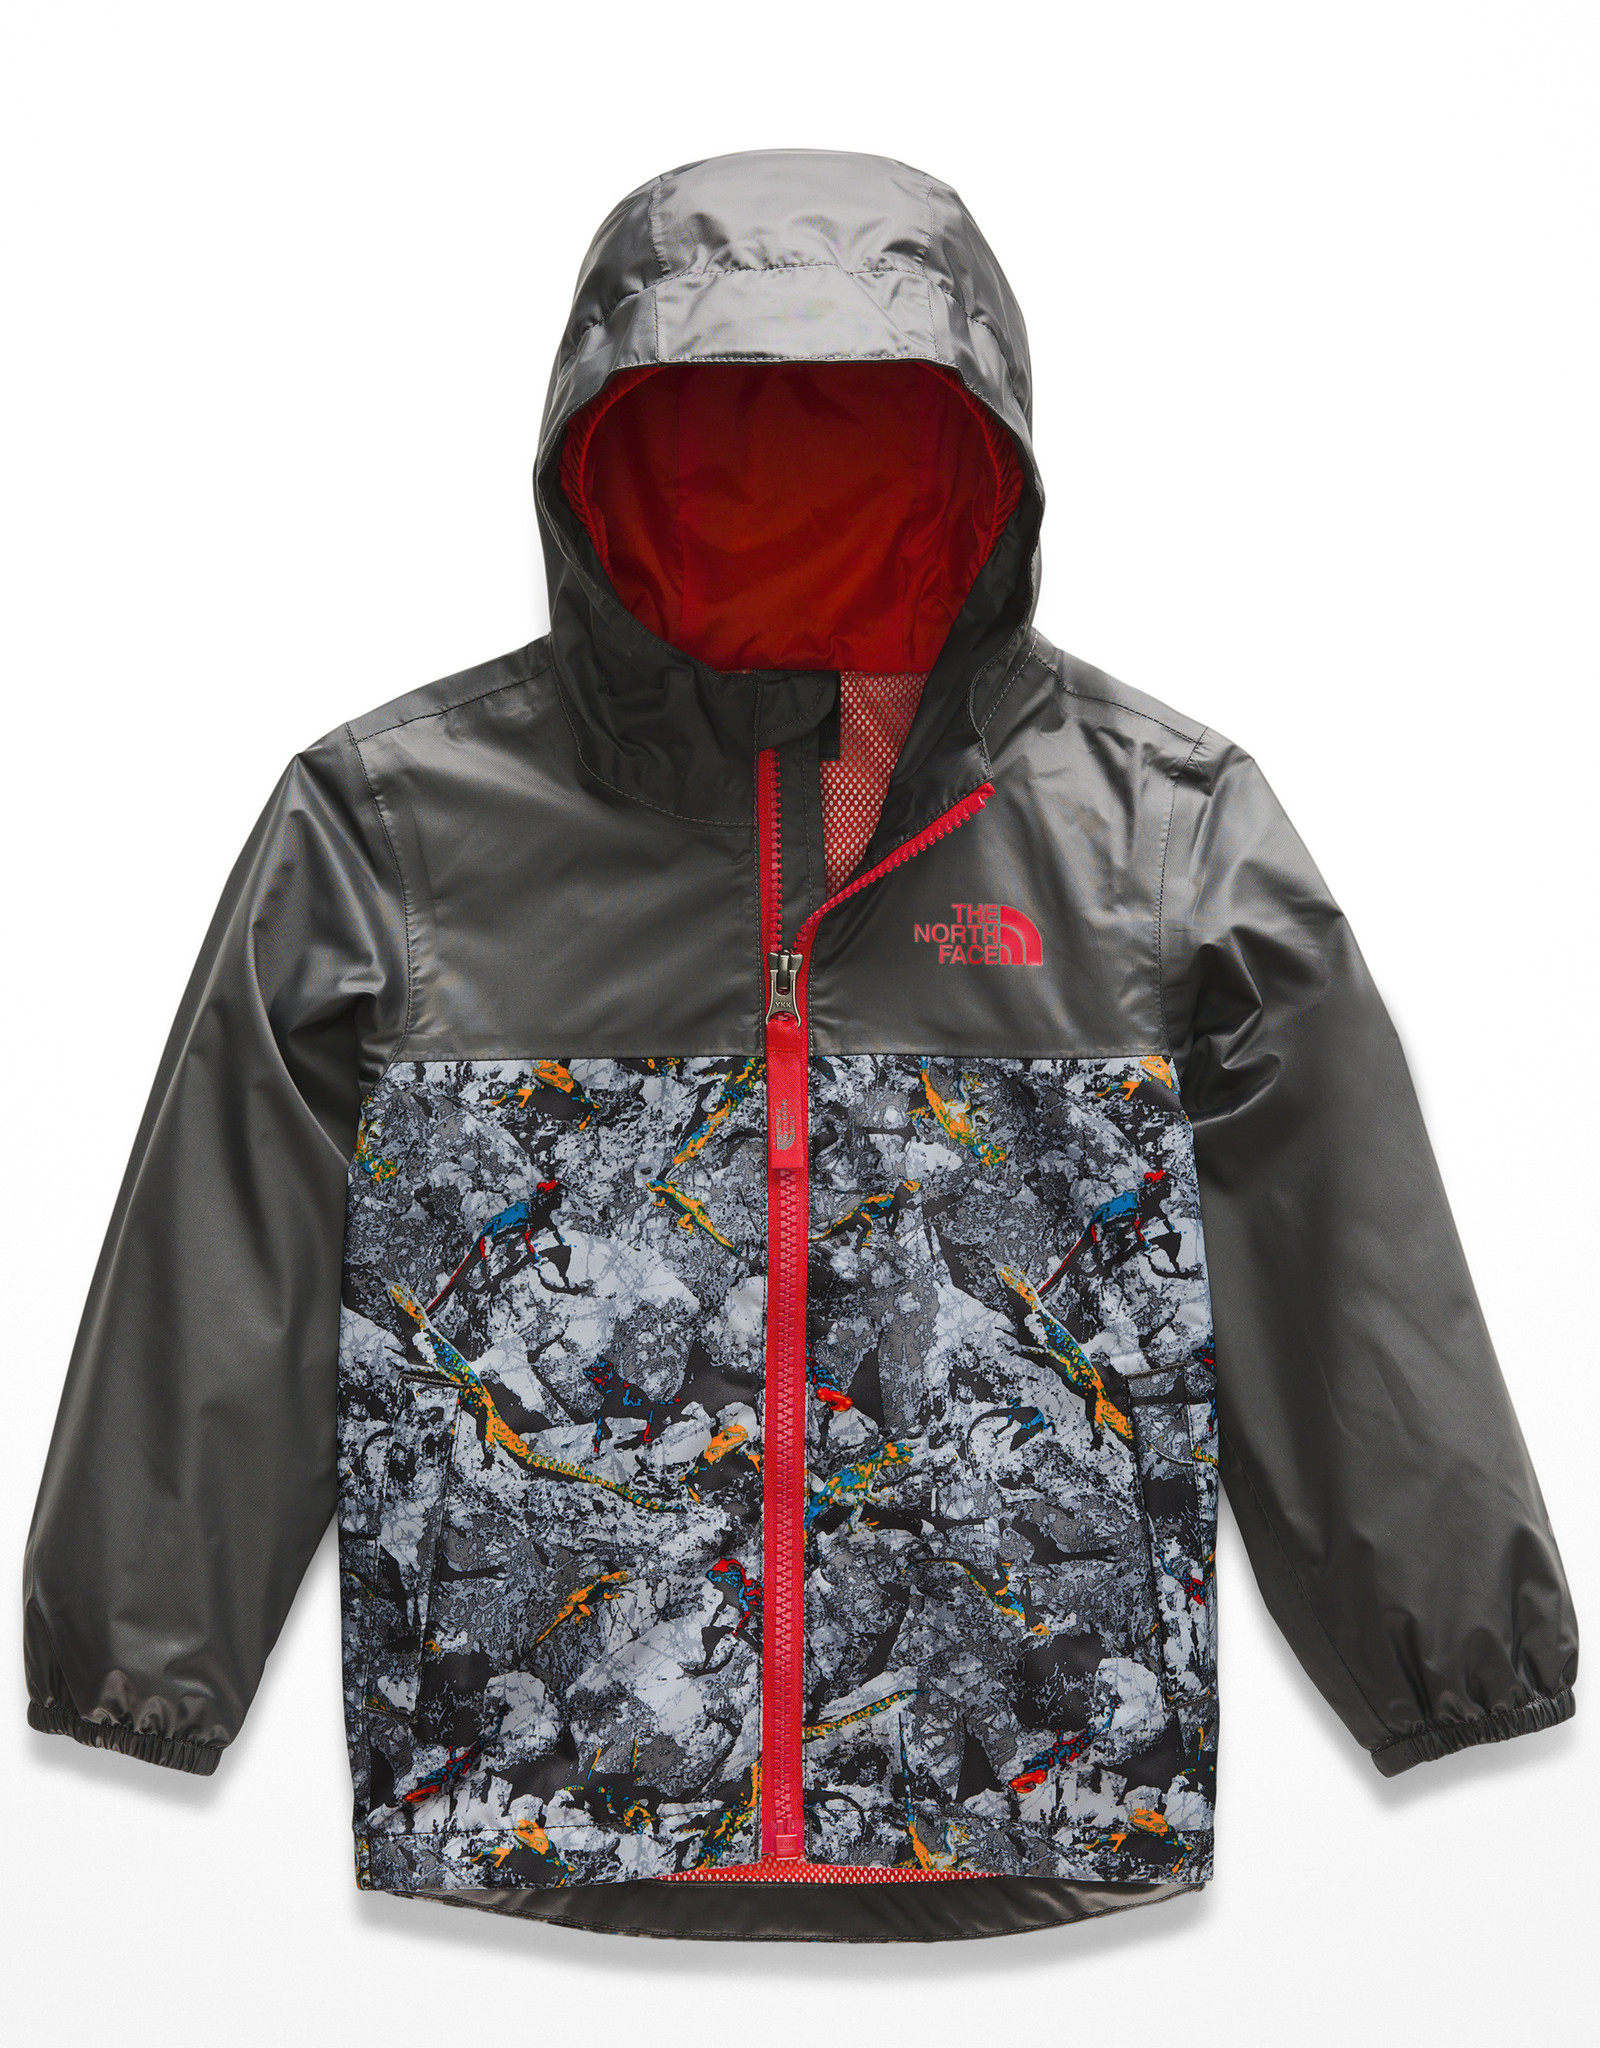 The North Face The North Face Toddler Zipline Rain Jacket - S2019